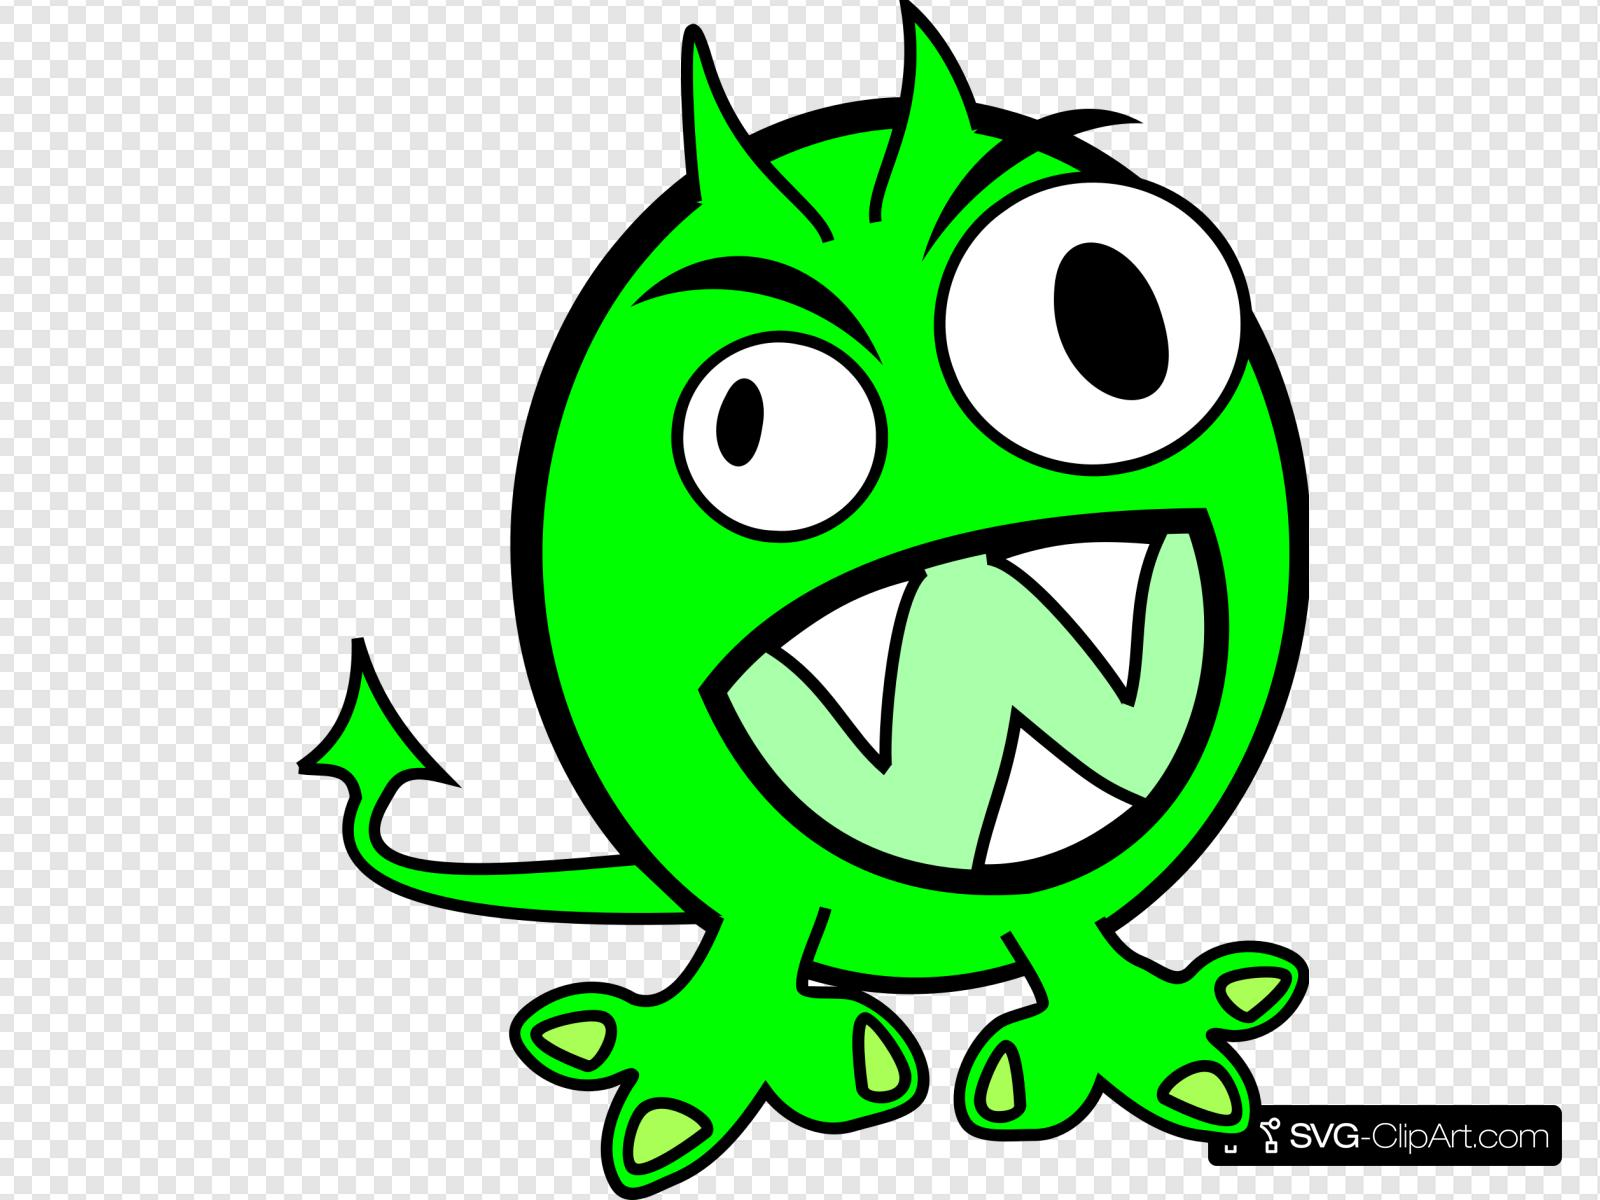 Green Monster Clip art, Icon and SVG.